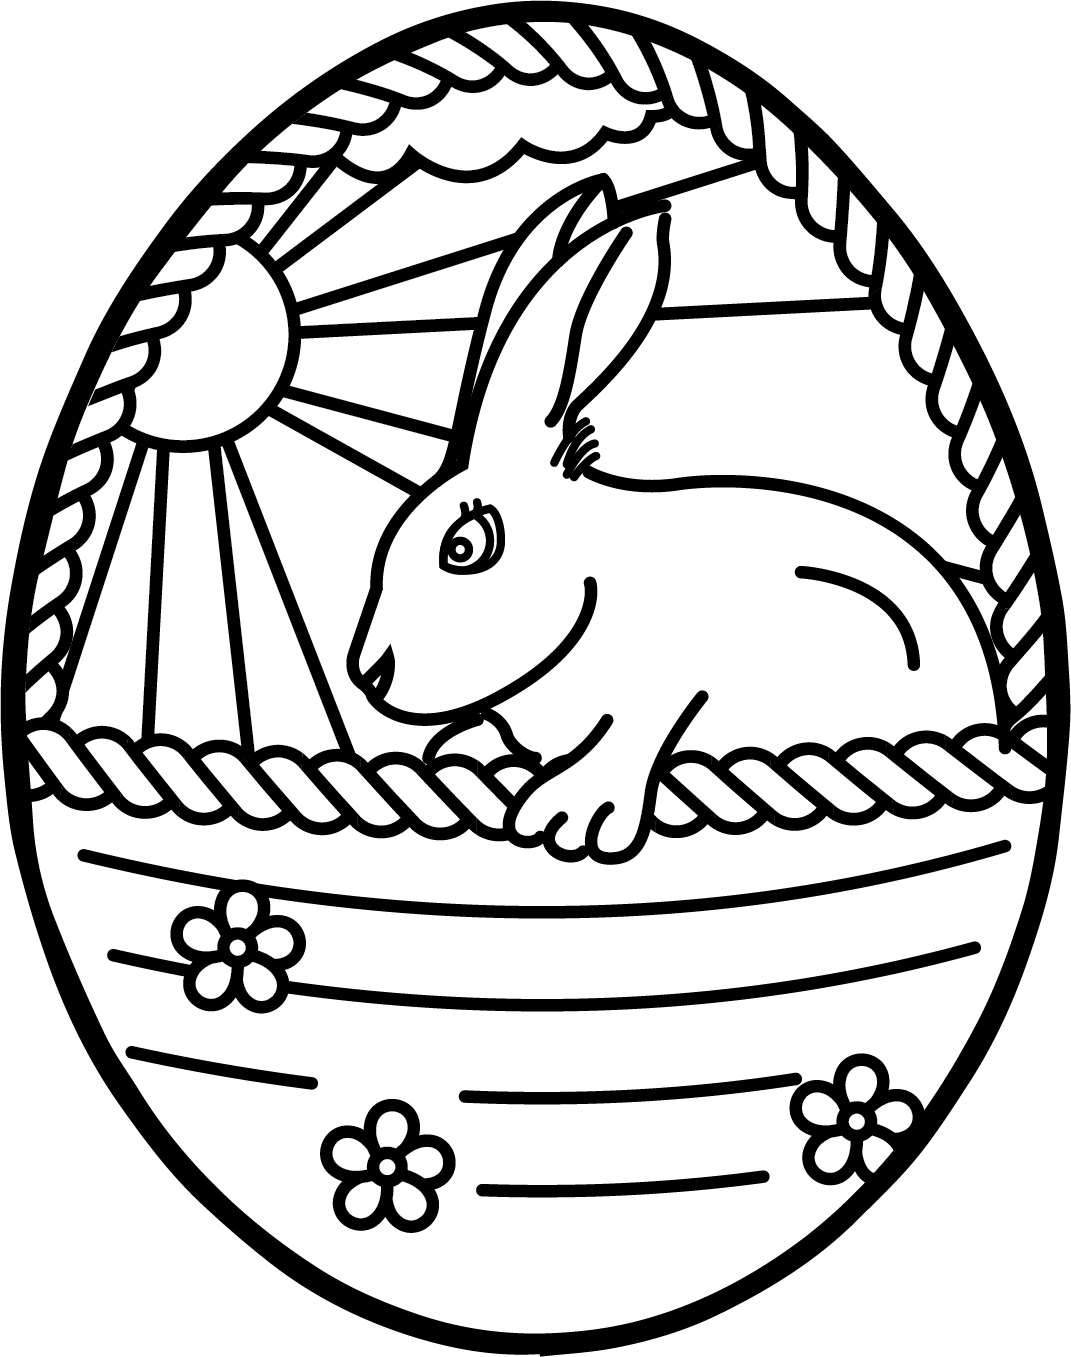 egg for colouring detailed easter egg coloring pages at getdrawings free for colouring egg